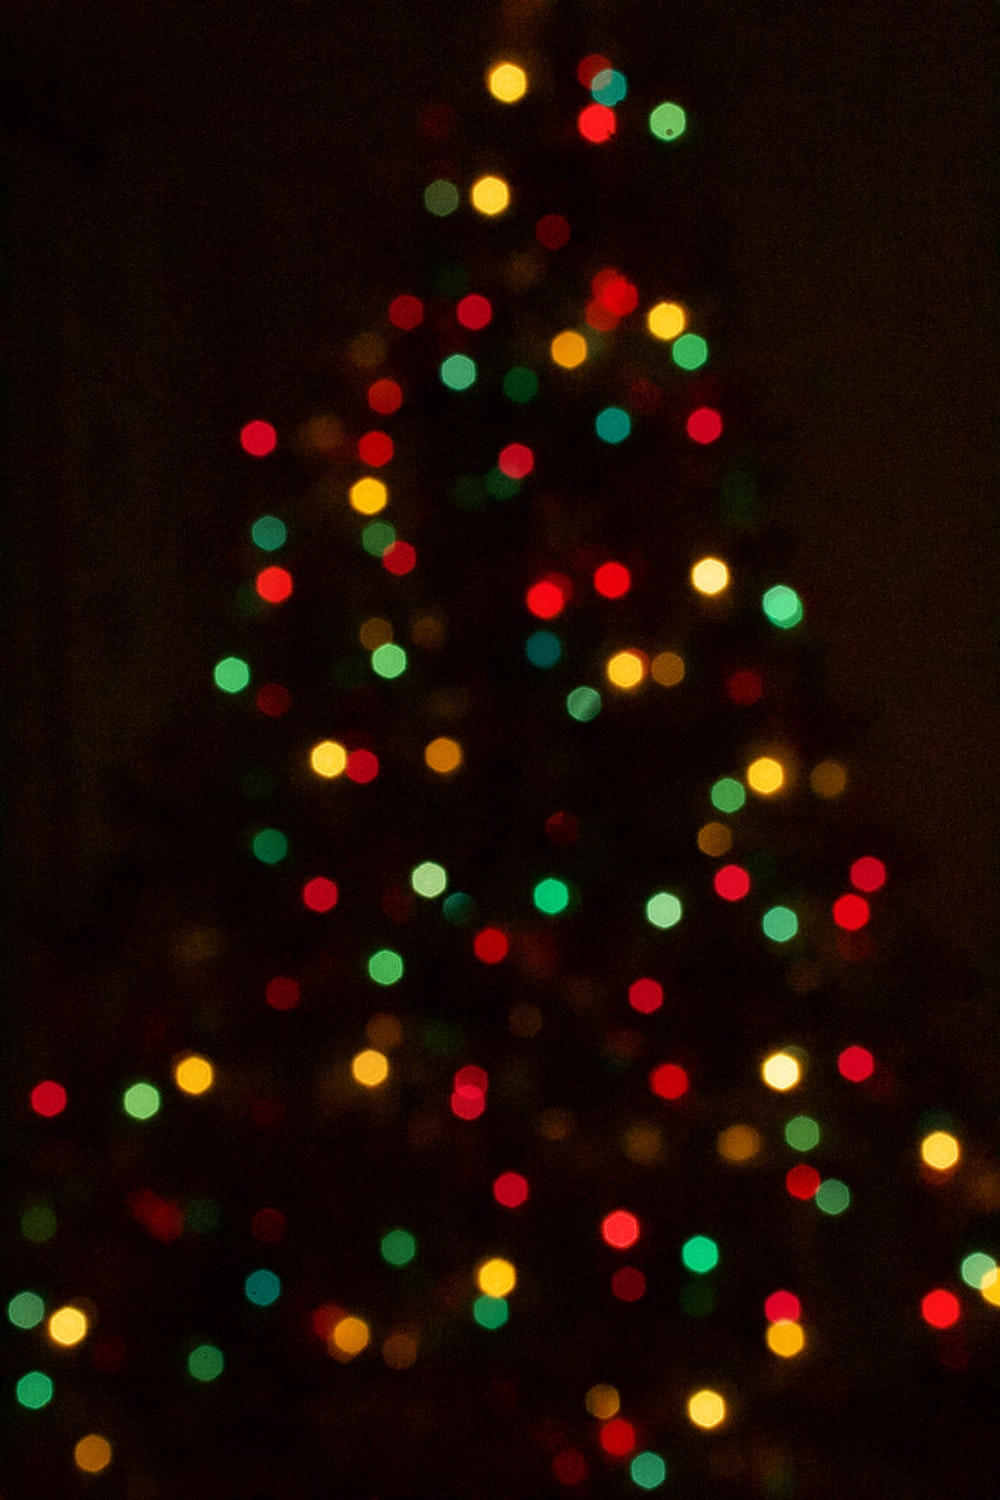 Christmas Tree With Lights.Christmas Tree Light Pictures Download Free Images On Unsplash